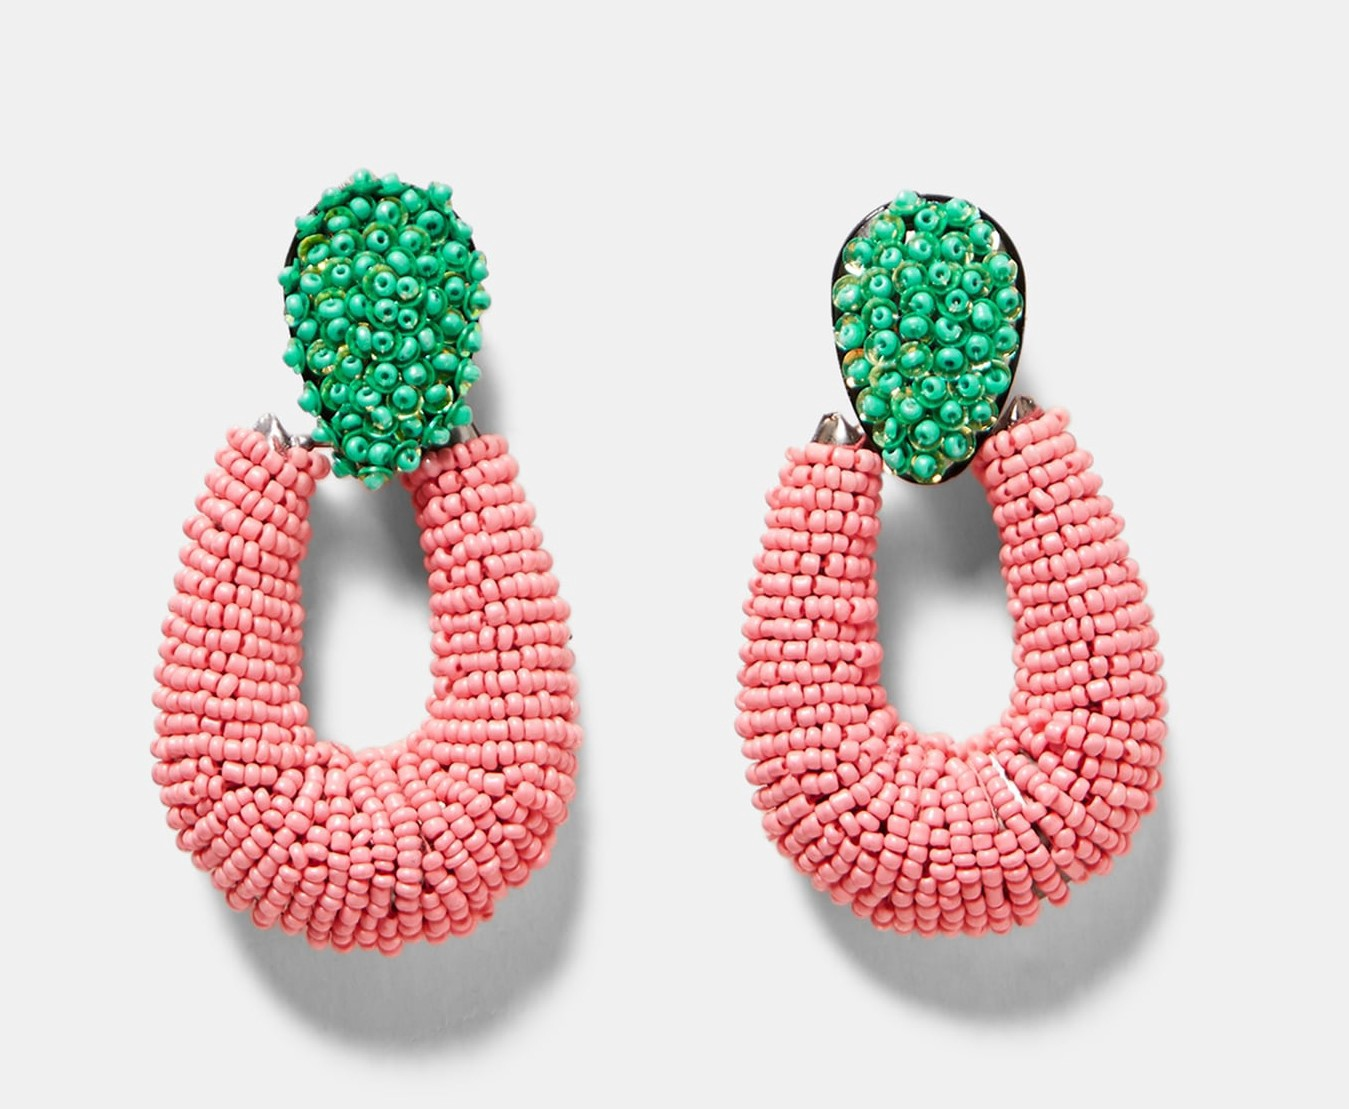 eecce3a694bd Two Tone Hoop Style Earrings, $19.90: These are bright and big. They manage  to be preppy, funky, and slightly exotic at the same time.